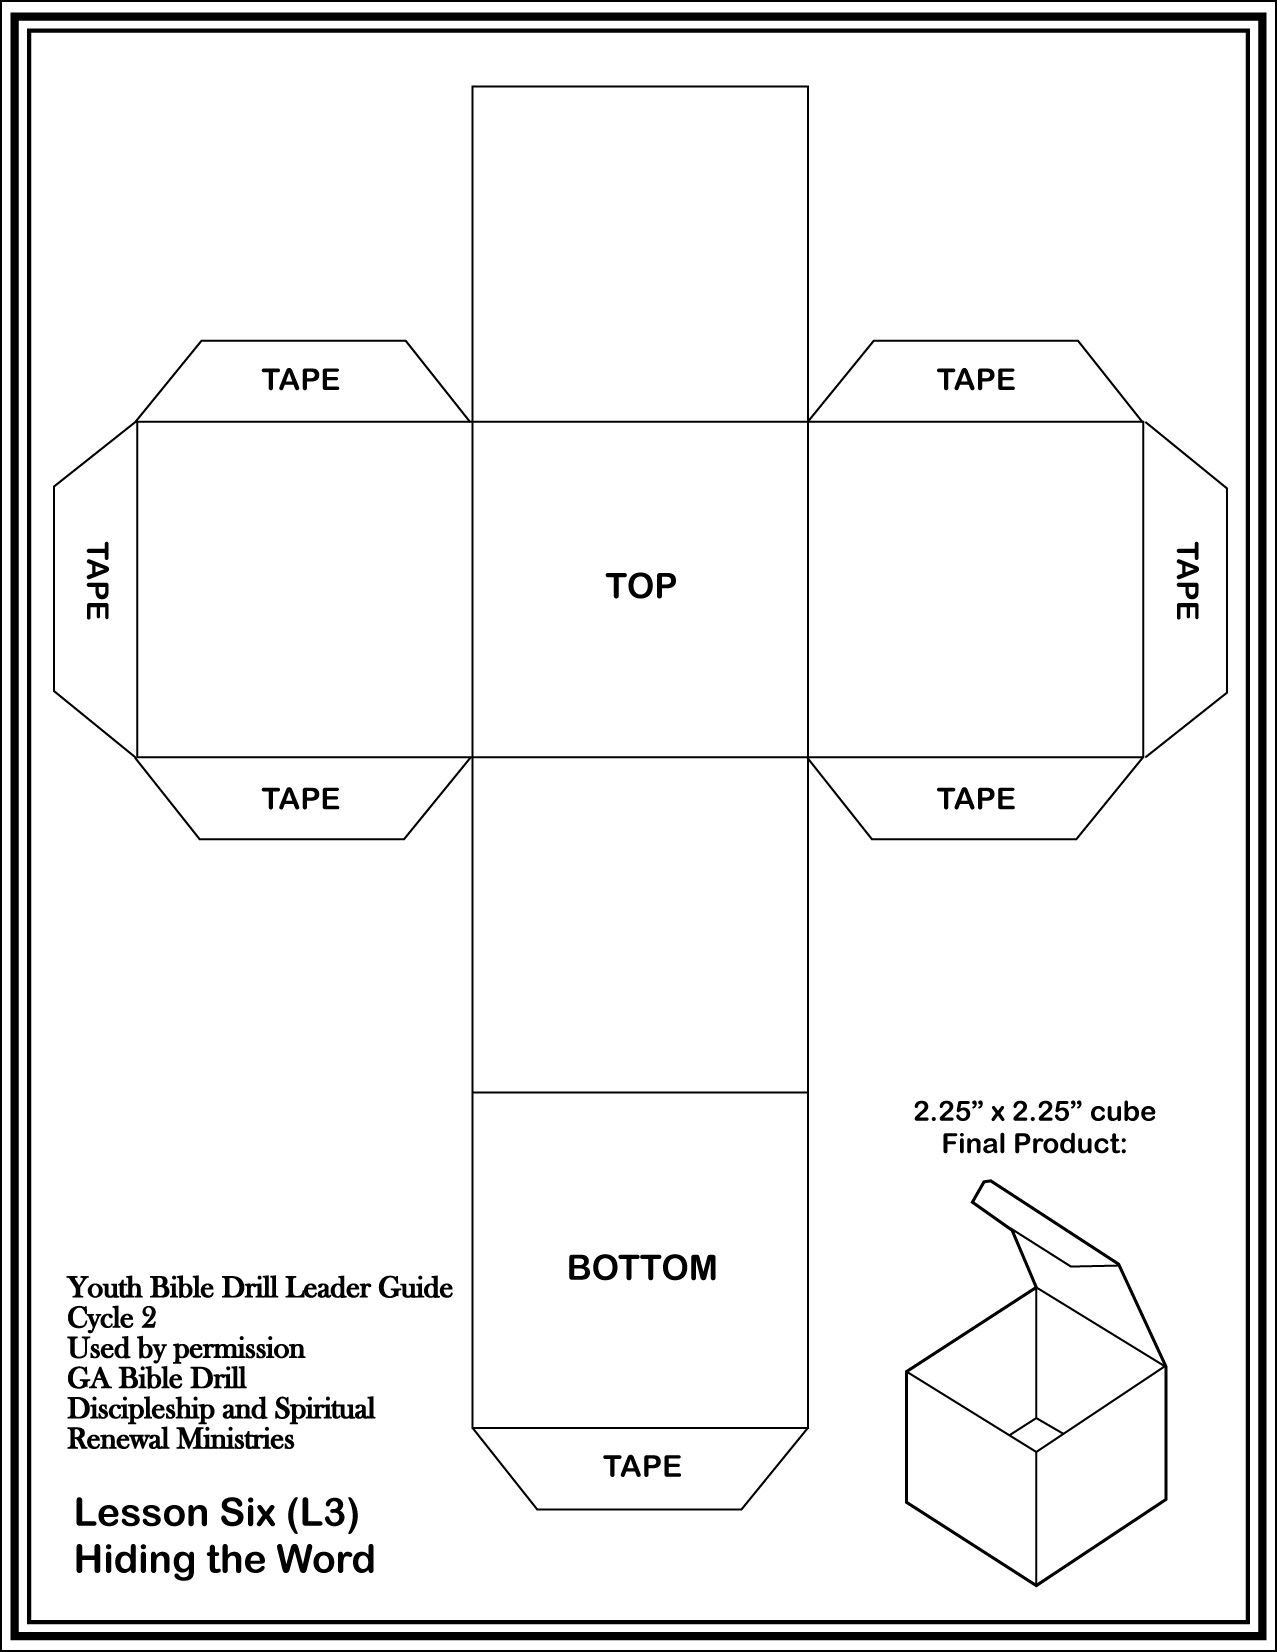 Download And Print Off The Cube Template On Cardstock And Assemble Use To Create Games To